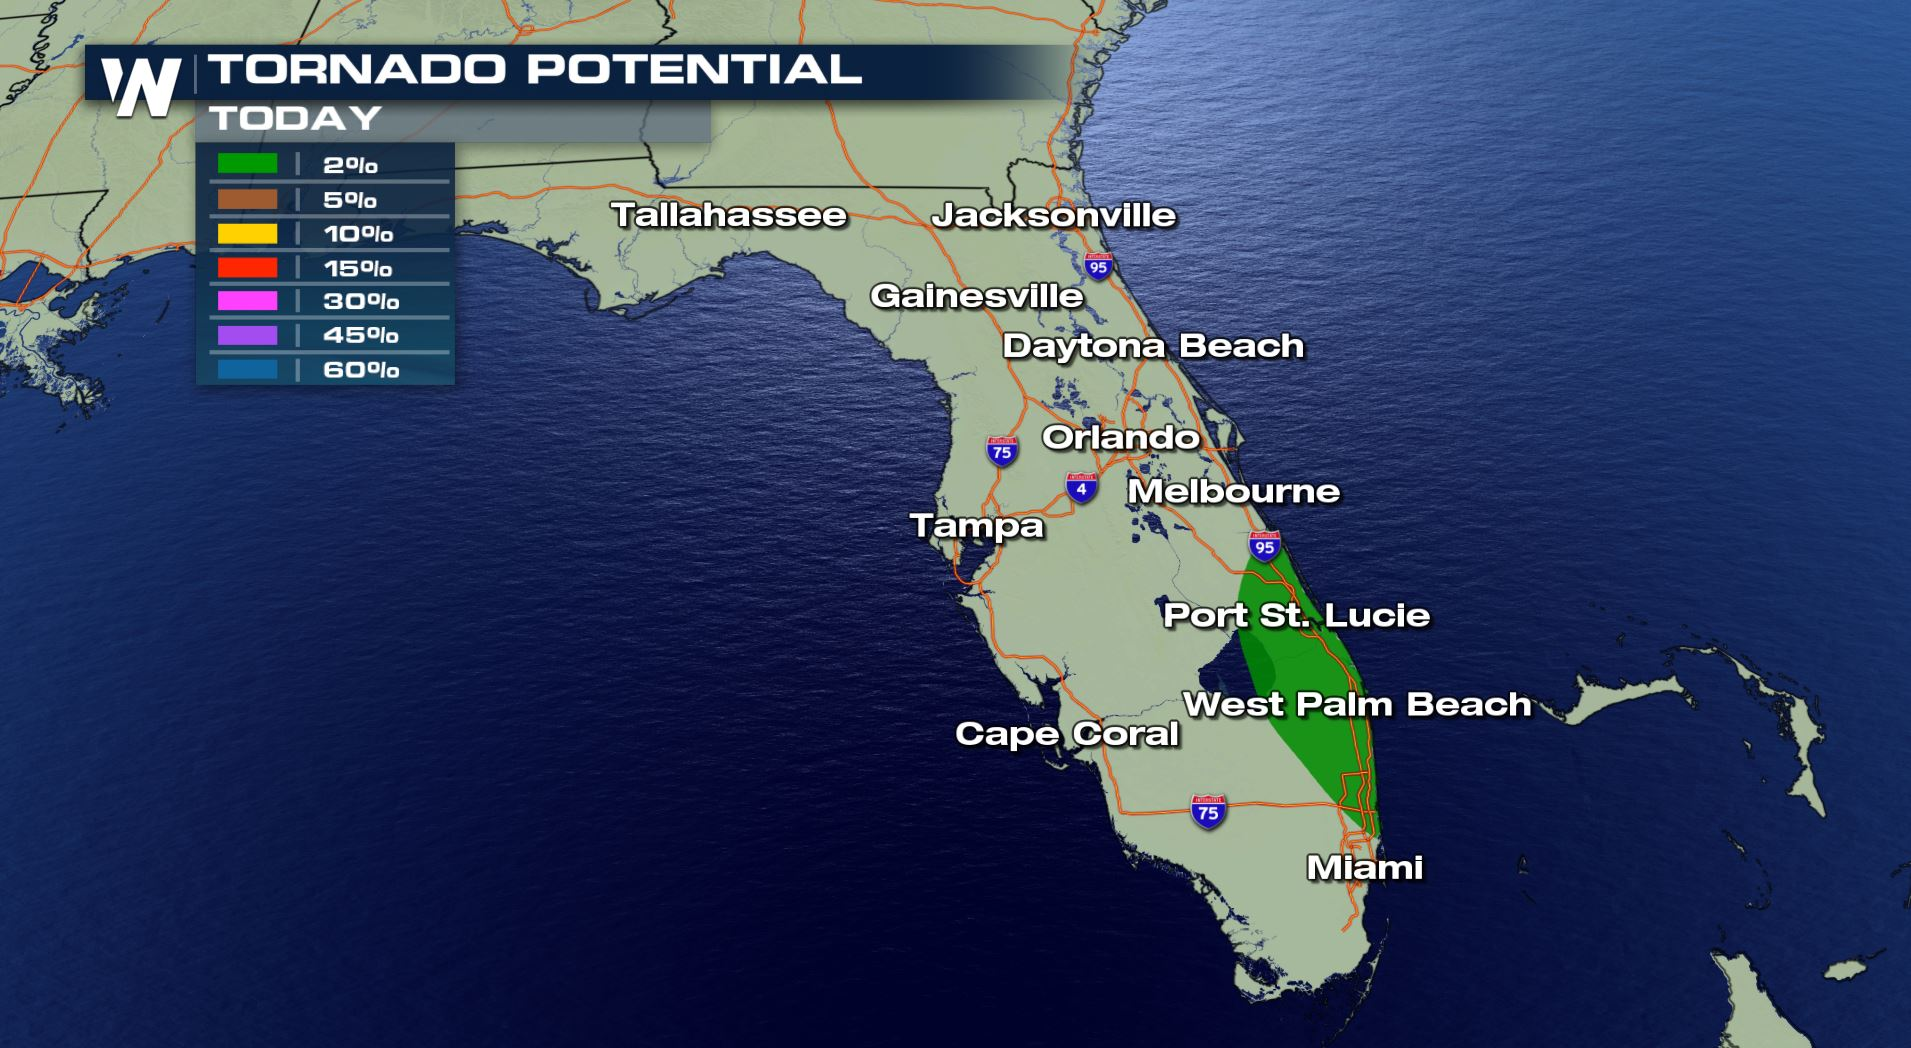 Map Of Southeast Florida Beaches.Tornado Risk Along The Florida Coast Tuesday Weathernation